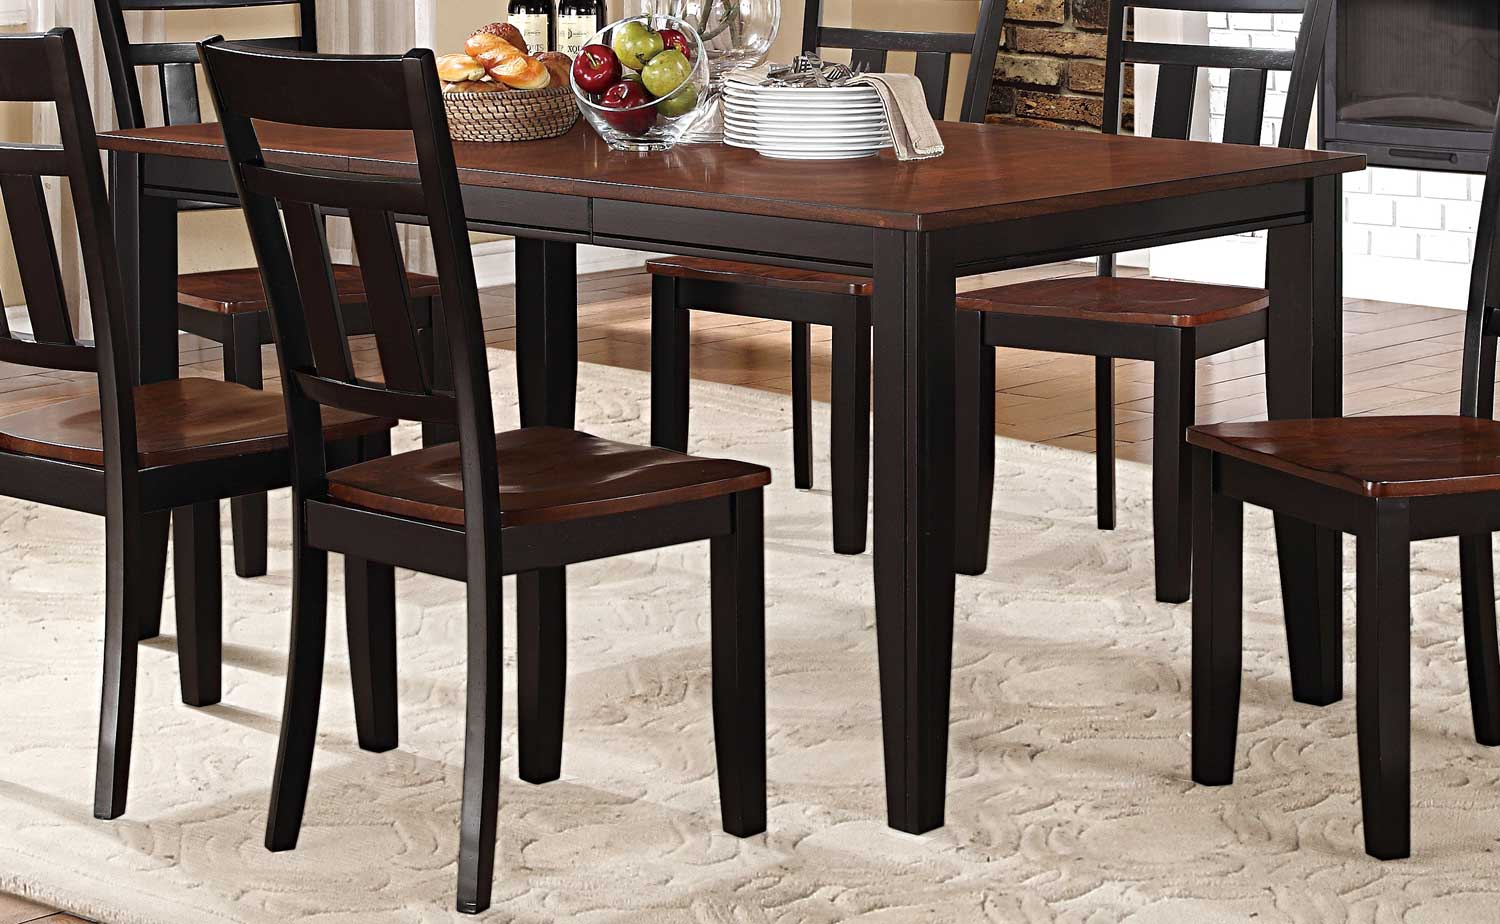 homelegance westport dining set - two tone black/cherry 5079bk-66